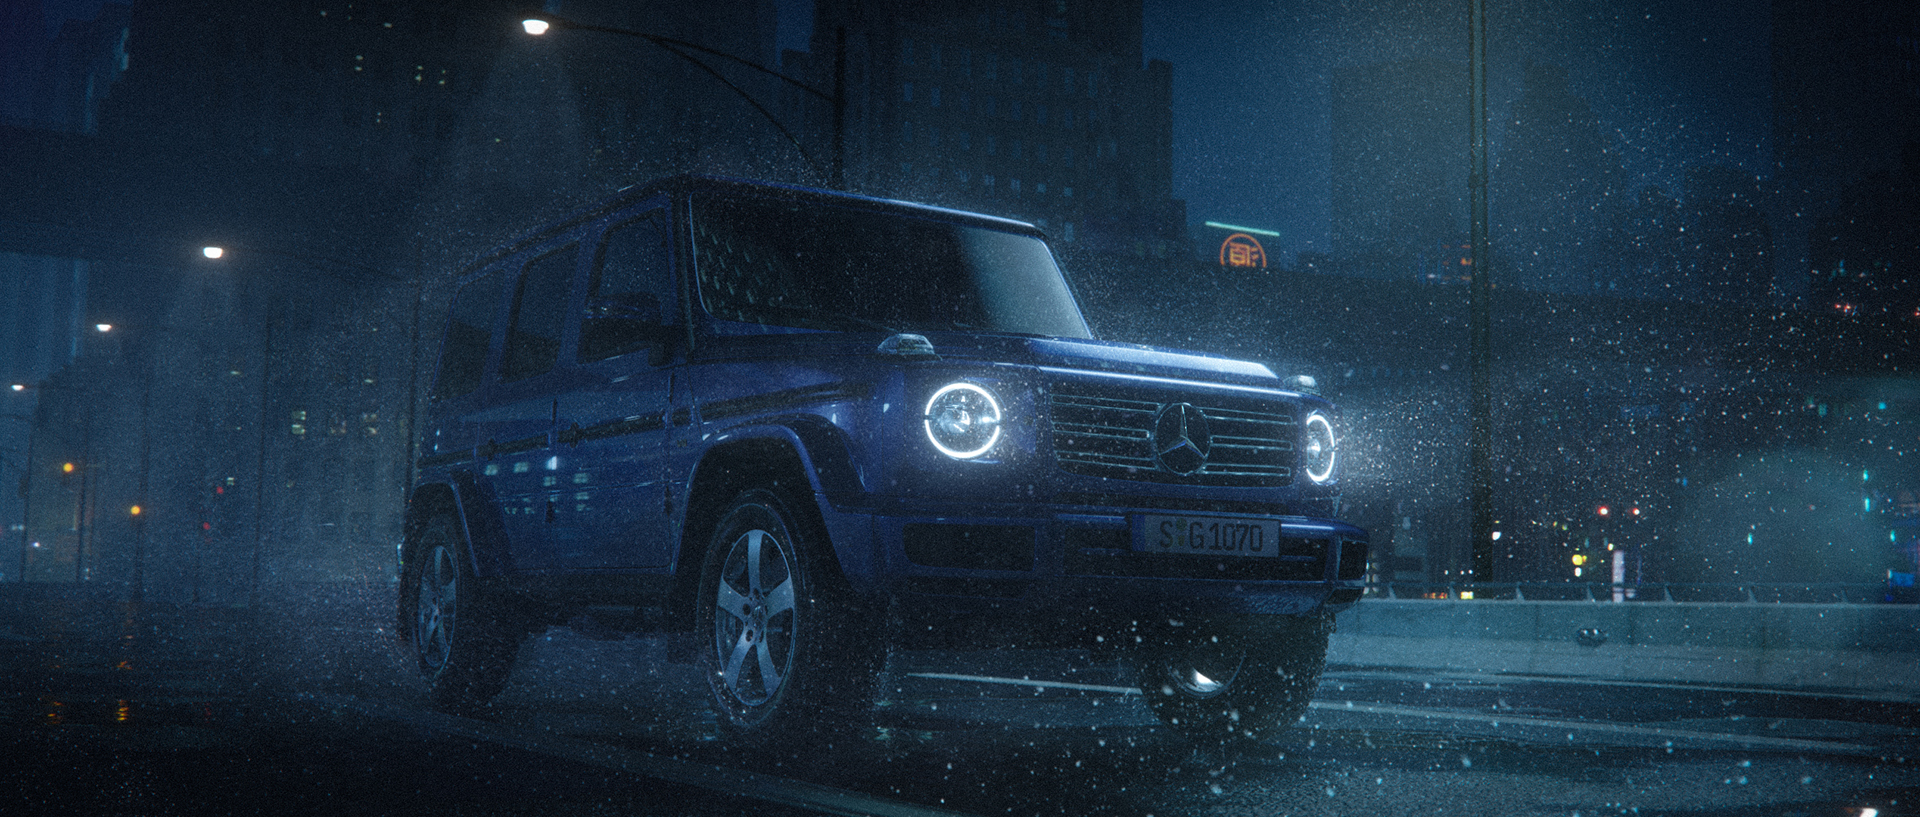 g-class_stronger_than_time_styleframe-04